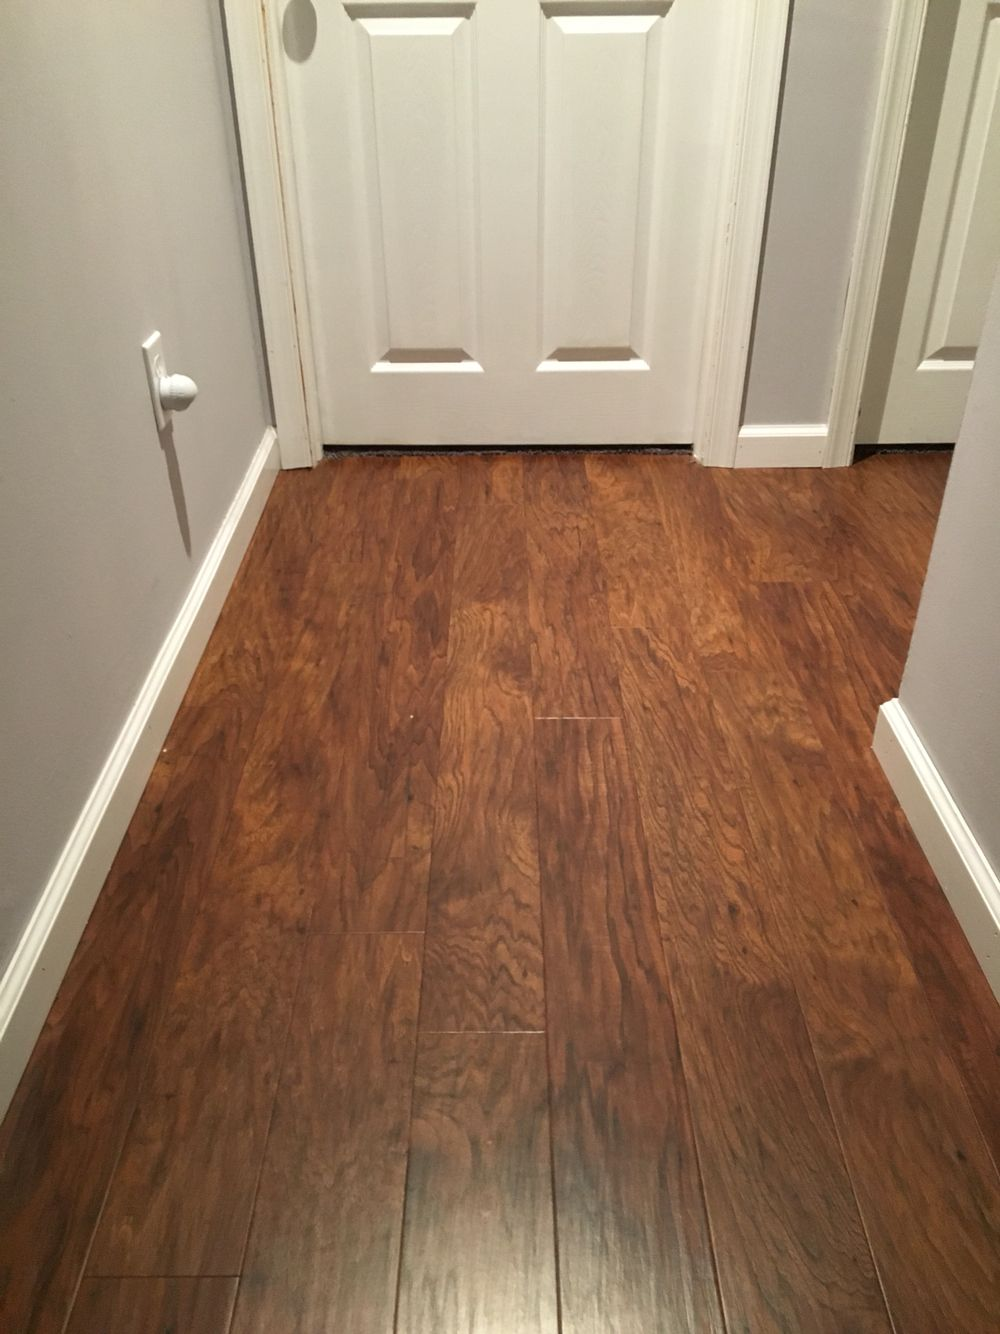 Allen and Roth flooring toasted chestnut Home decor Pinterest